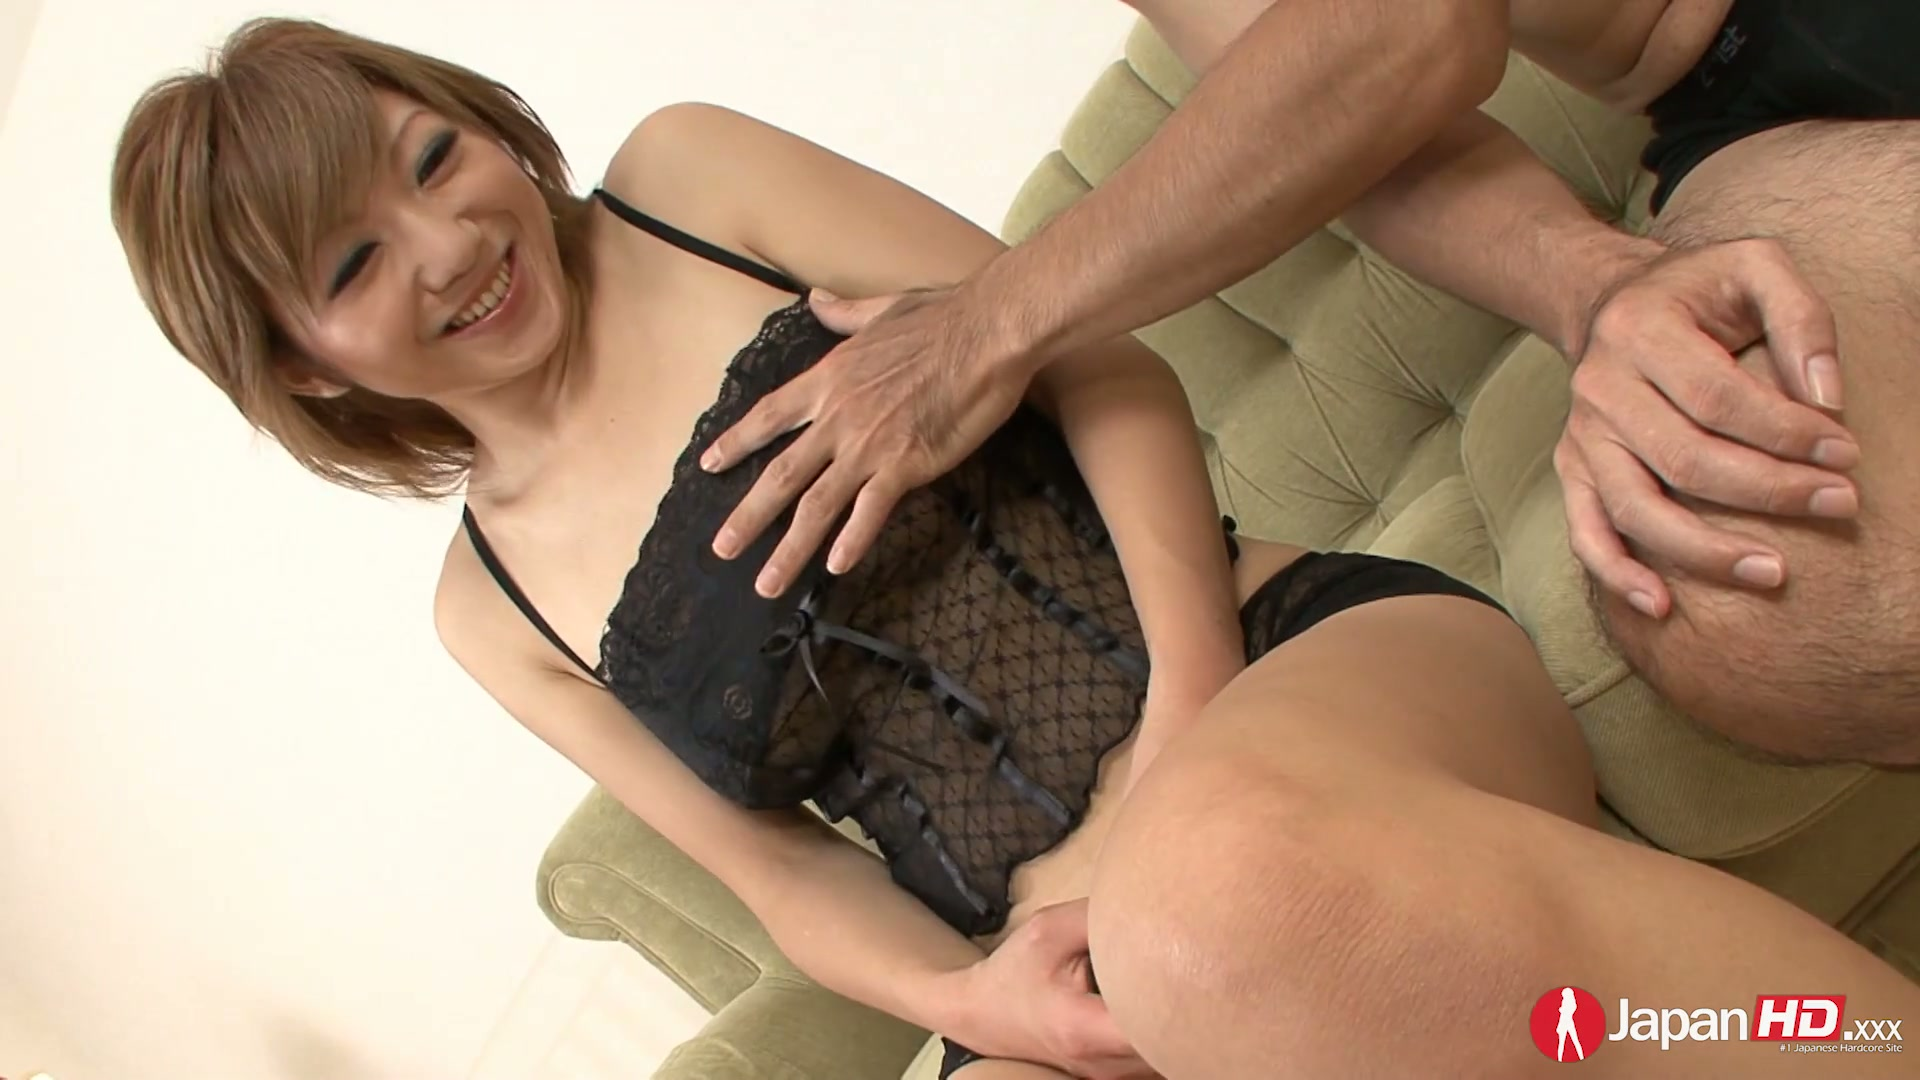 girls vedioclips sex with nude quality high